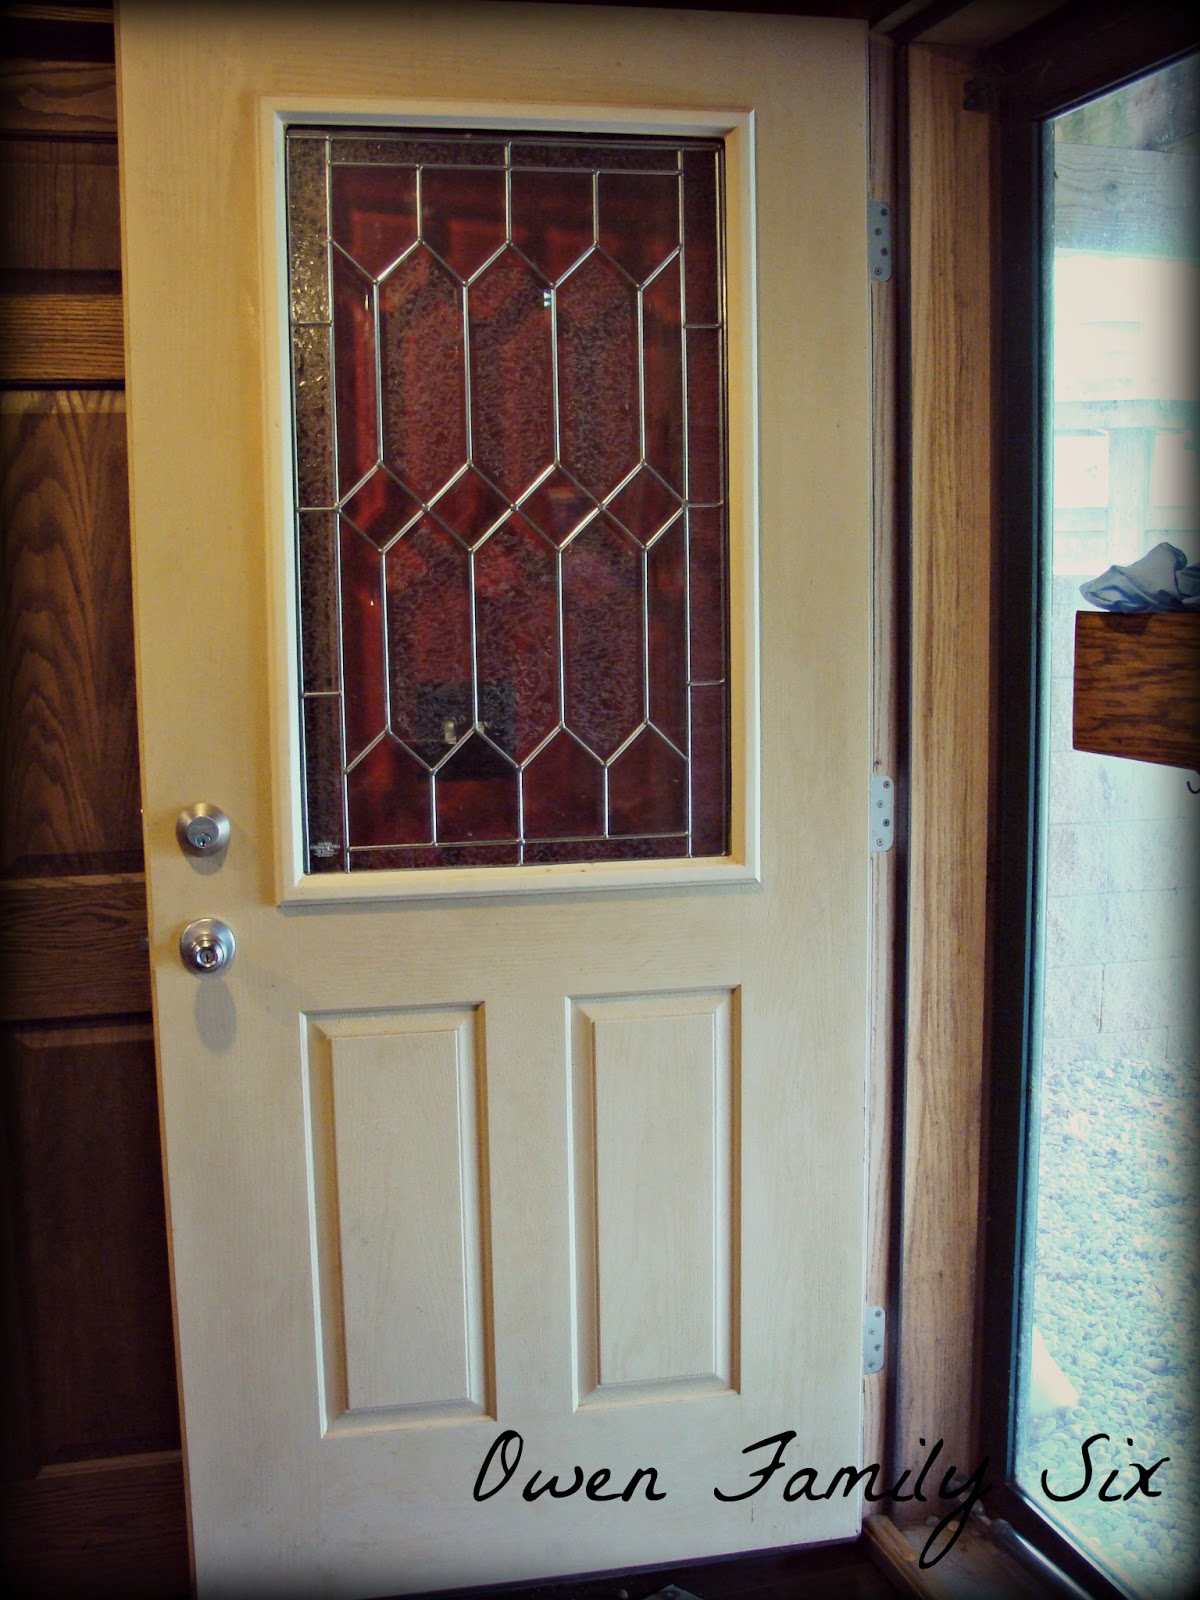 owen family six basement door